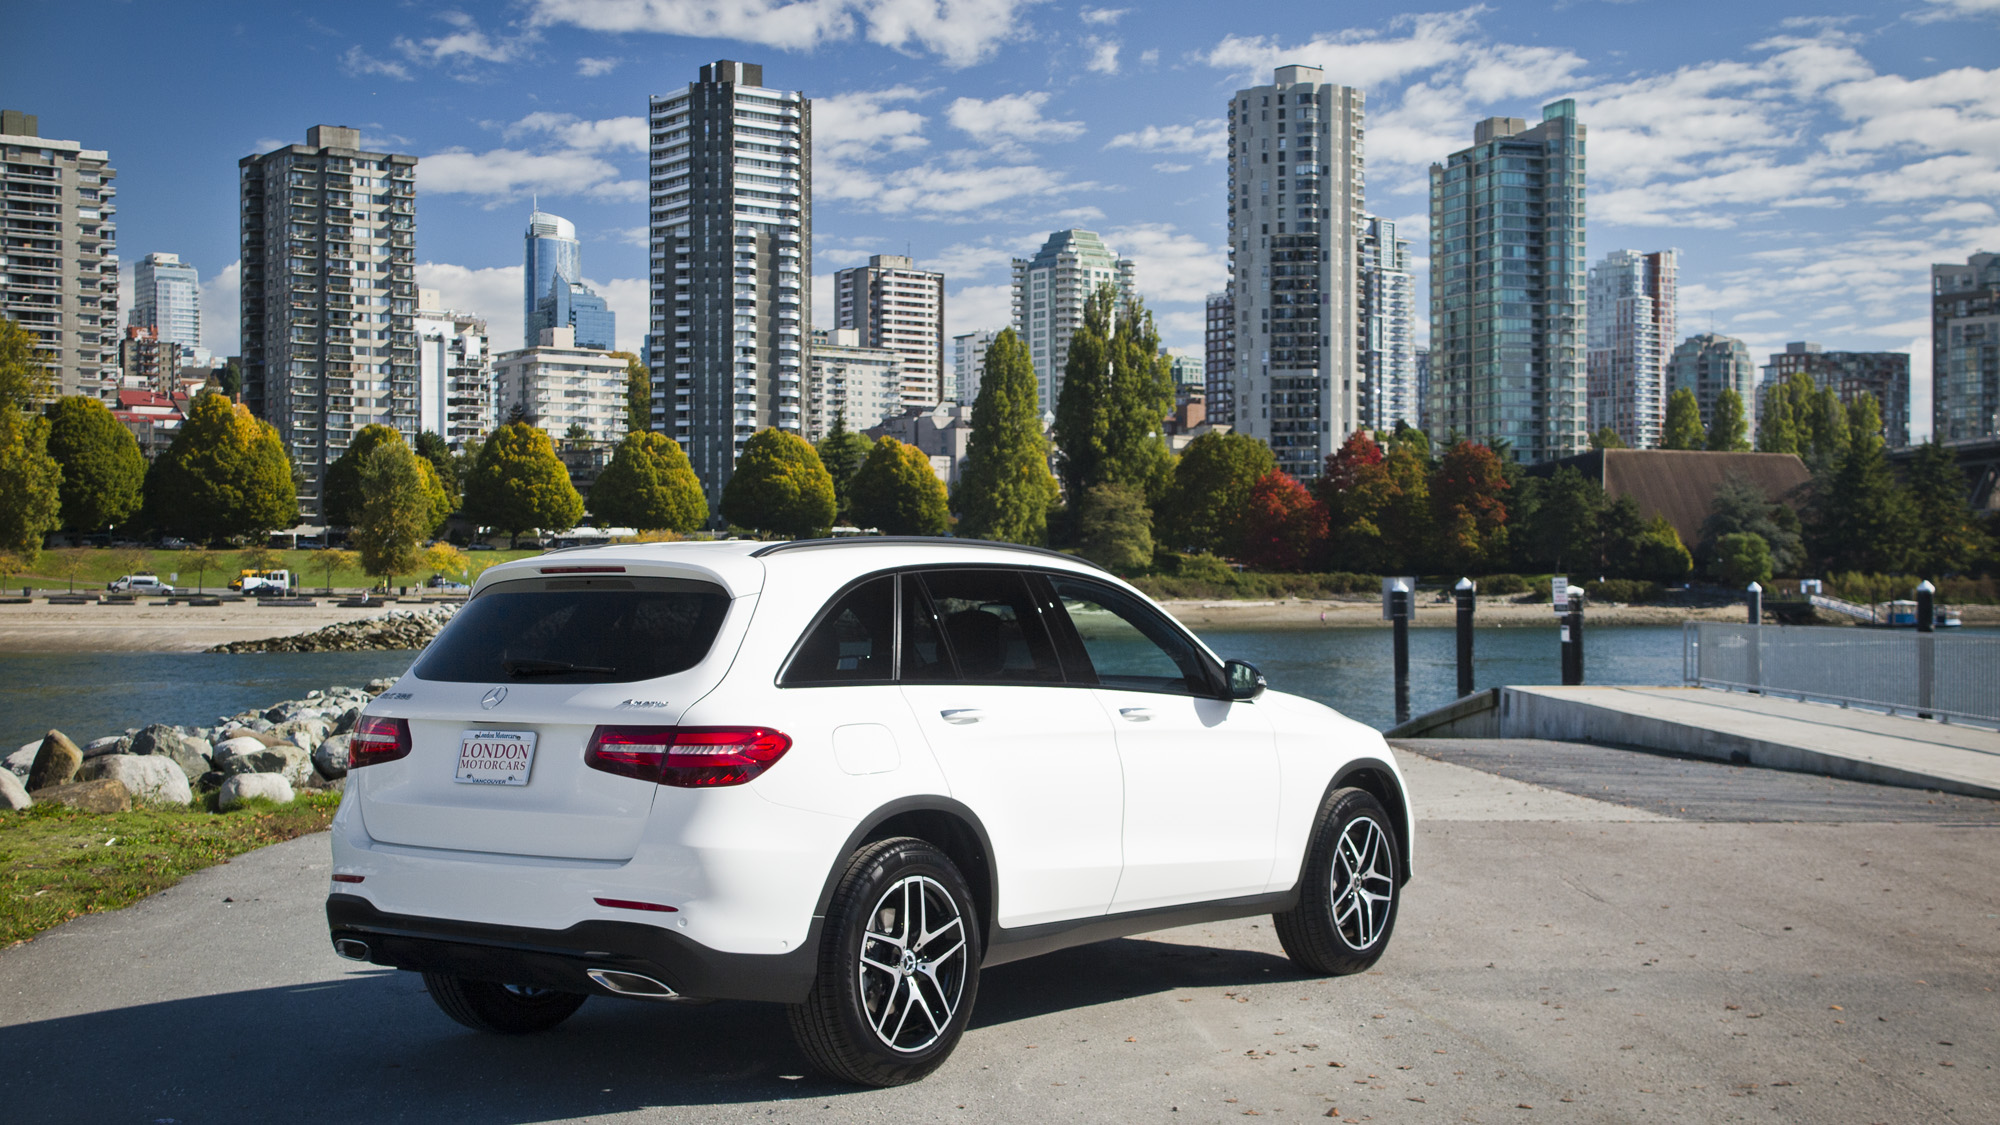 Mb Glc 300 >> Mercedes Benz 2019 GLC300 4MATIC - London Motorcars